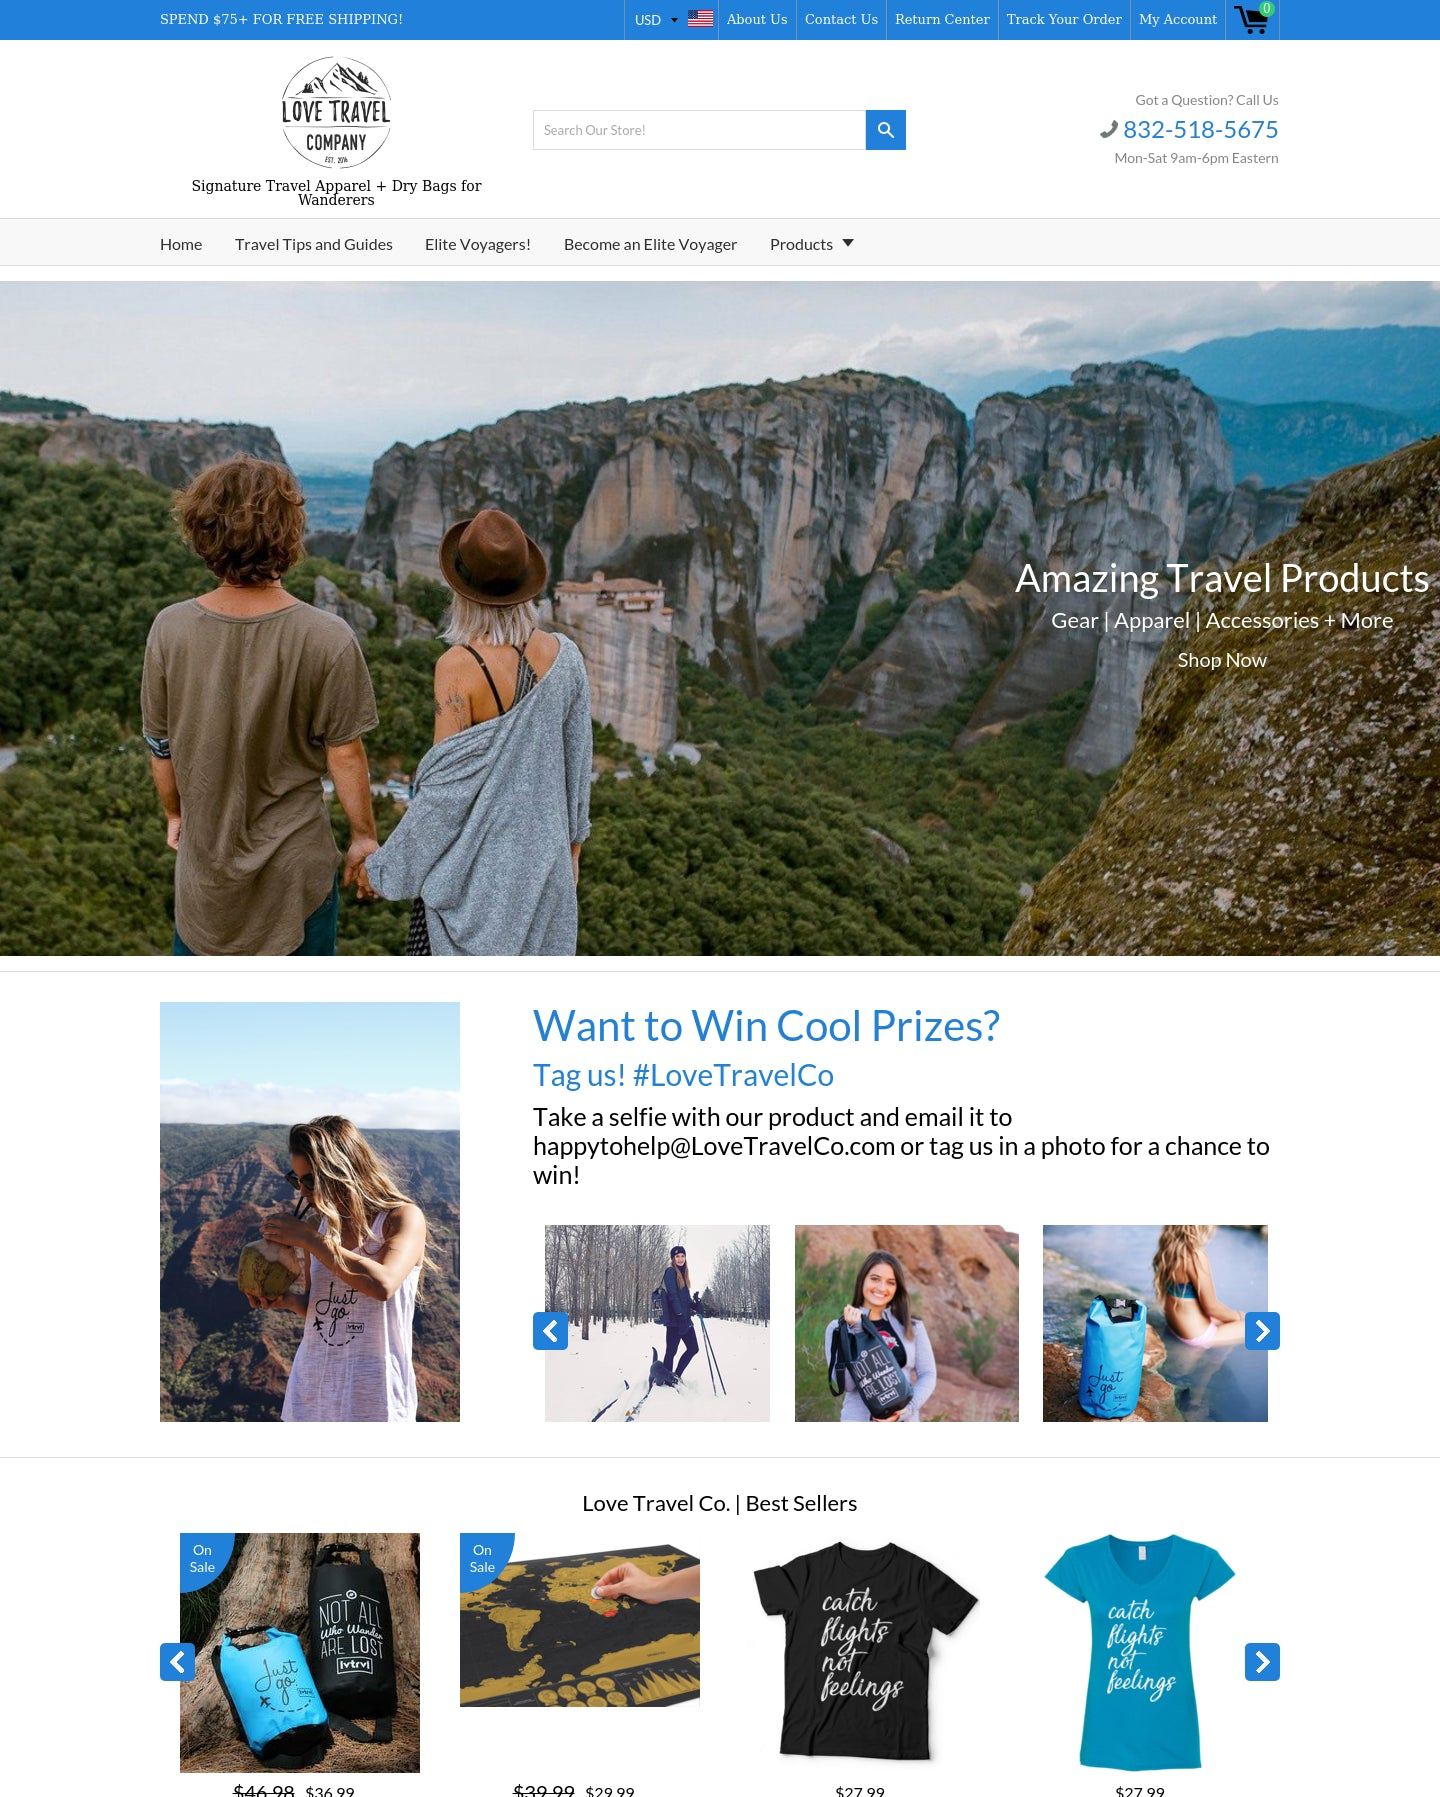 Love Travel Co   Signature Travel Apparel + Dry Bags for Wanderers Screenshot - 1